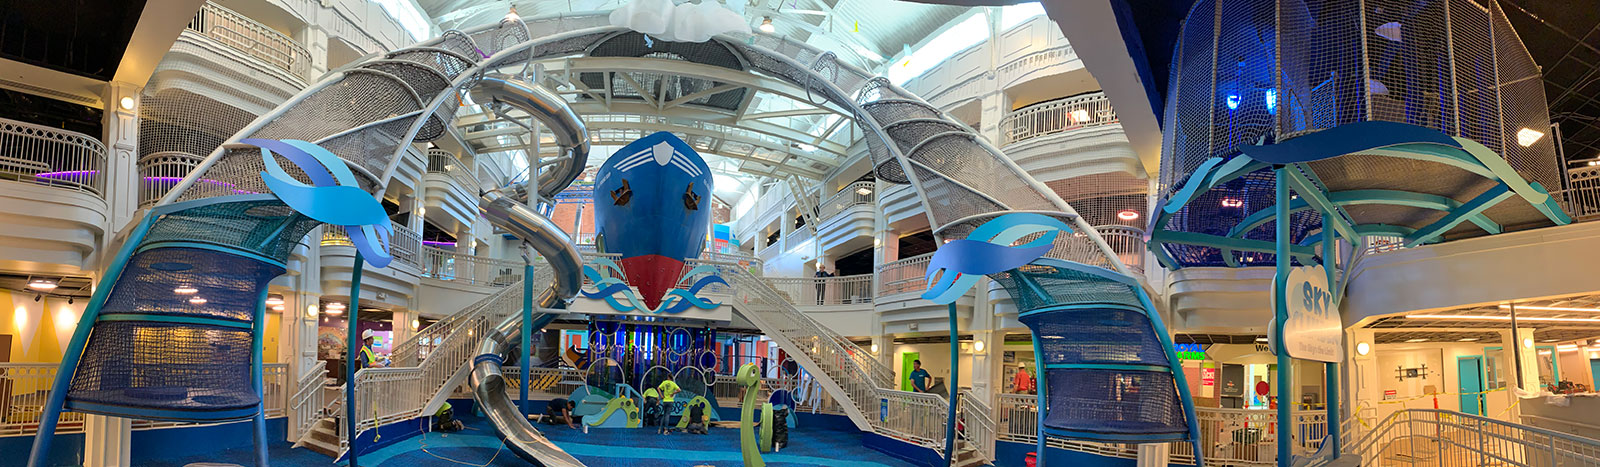 A panoramic scene of Port Discovery Children's Museum.